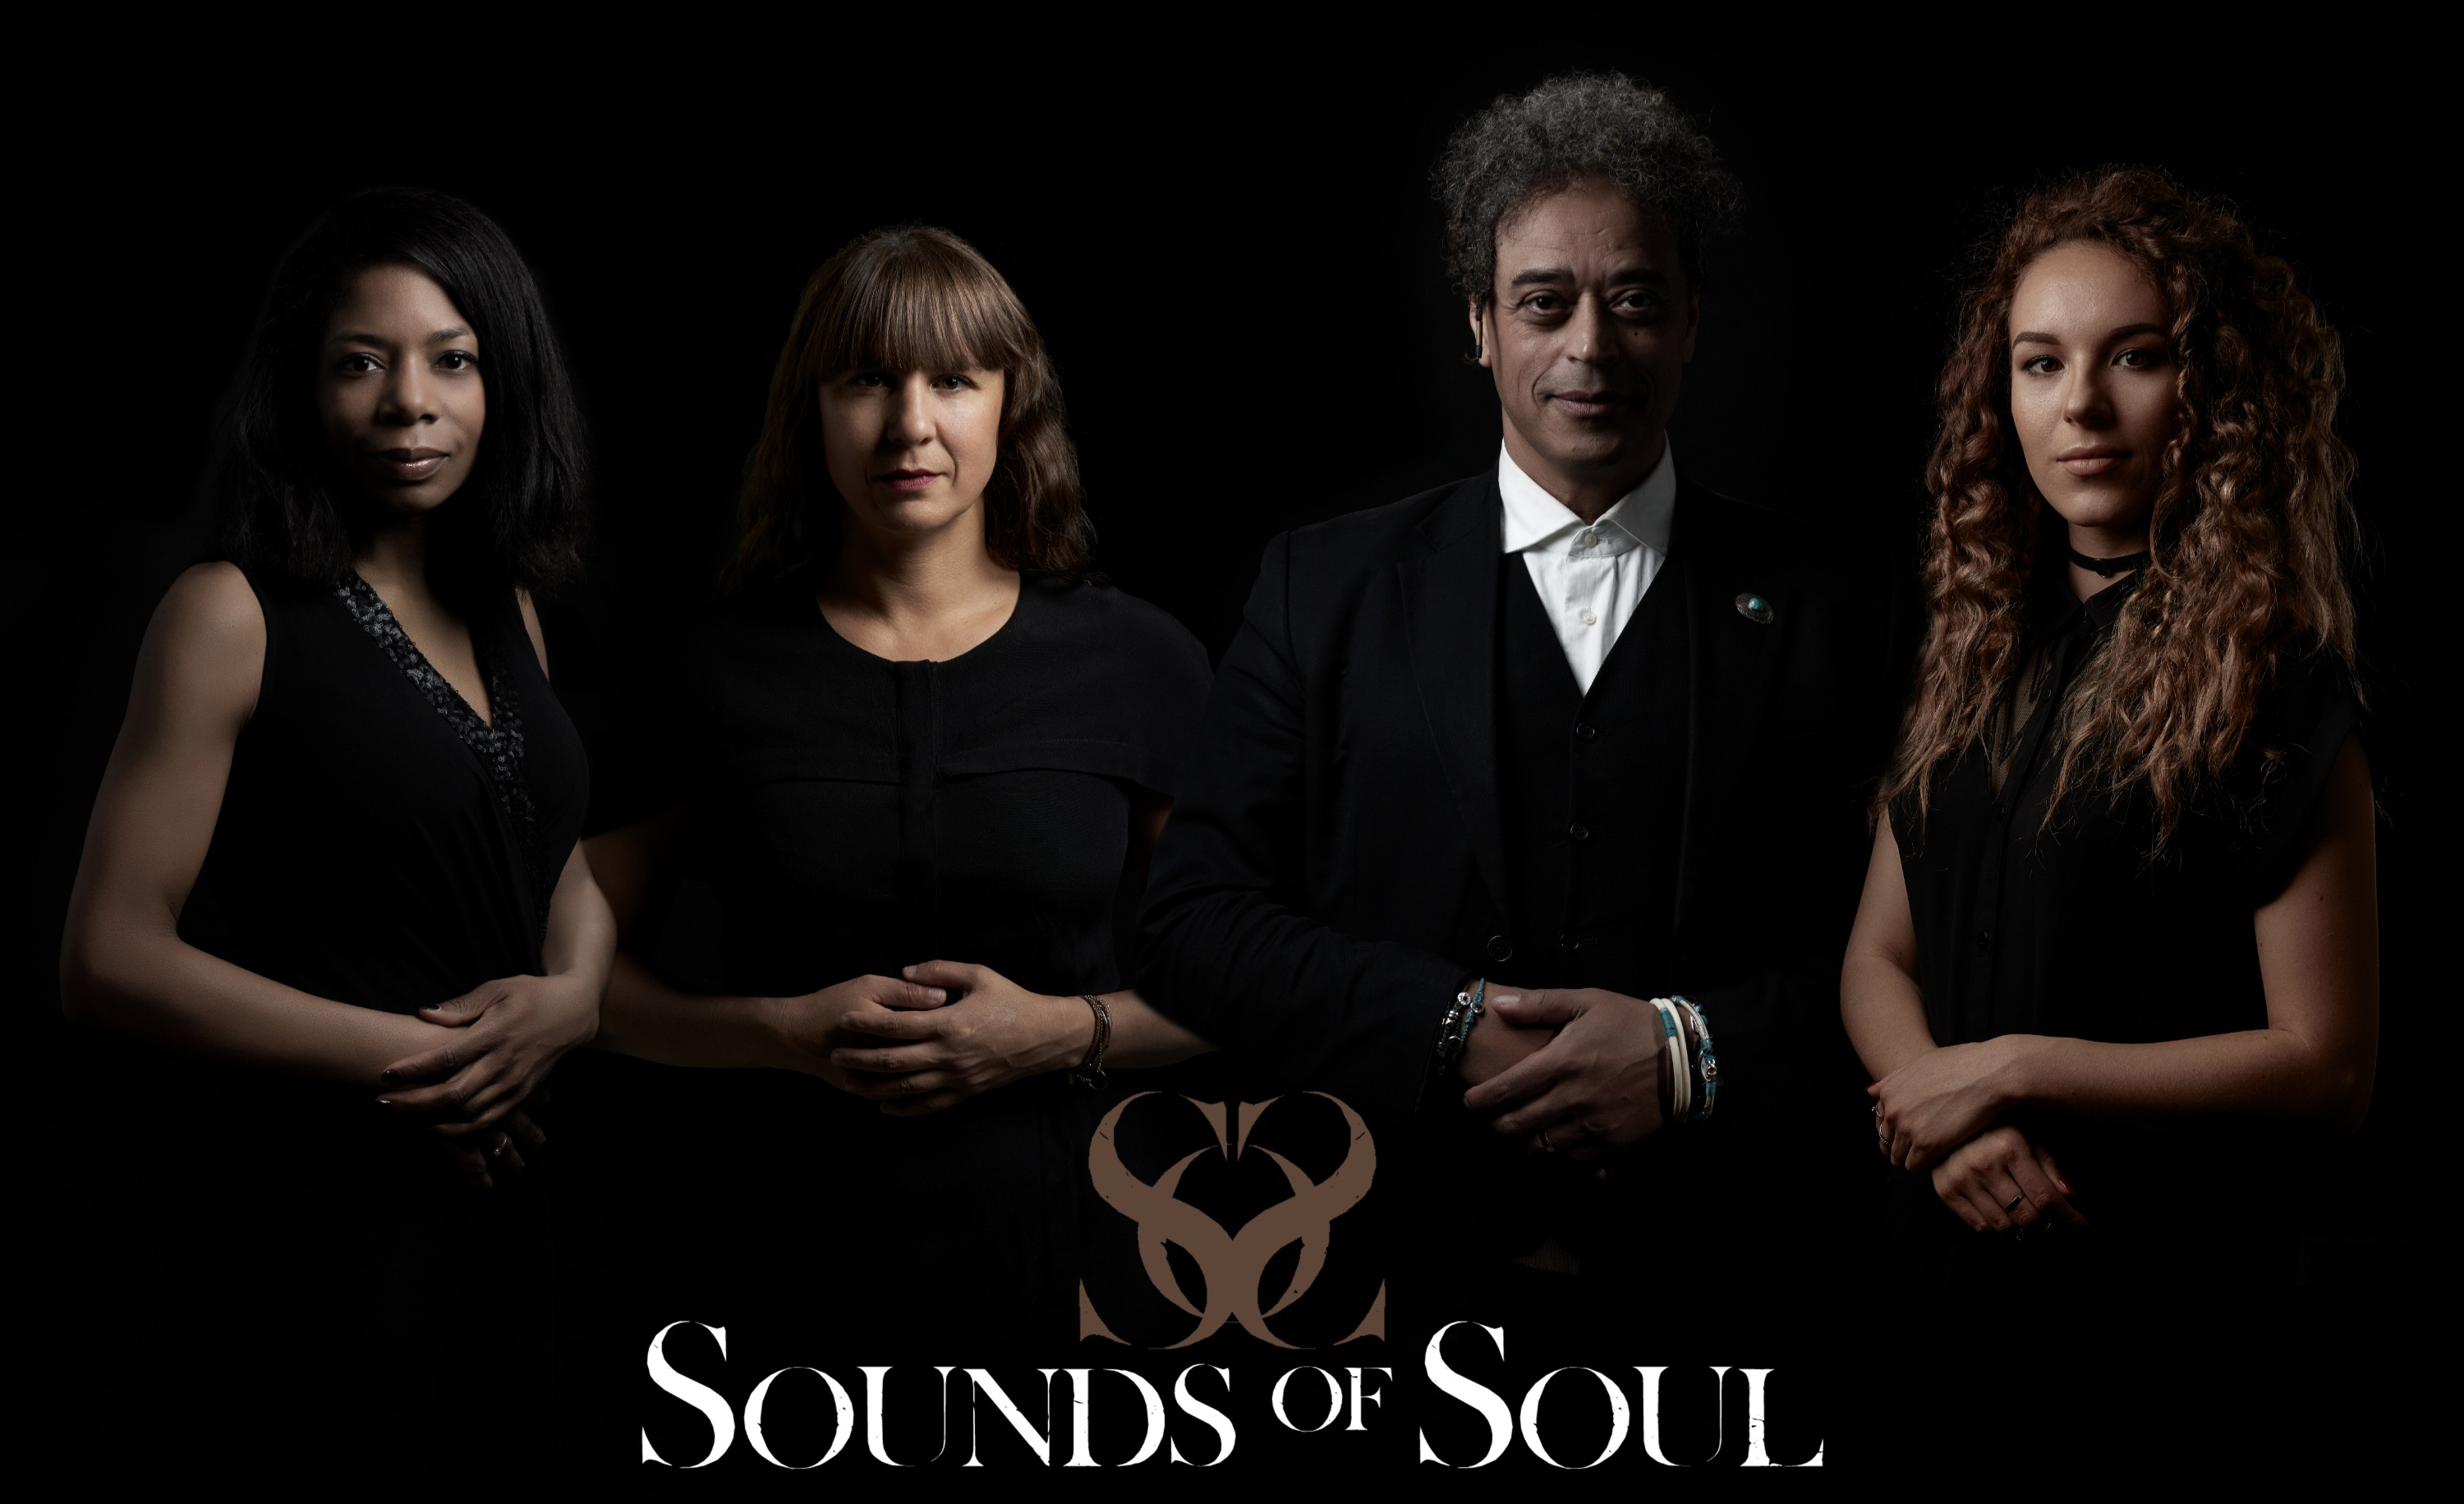 SOUNDS OF SOUL